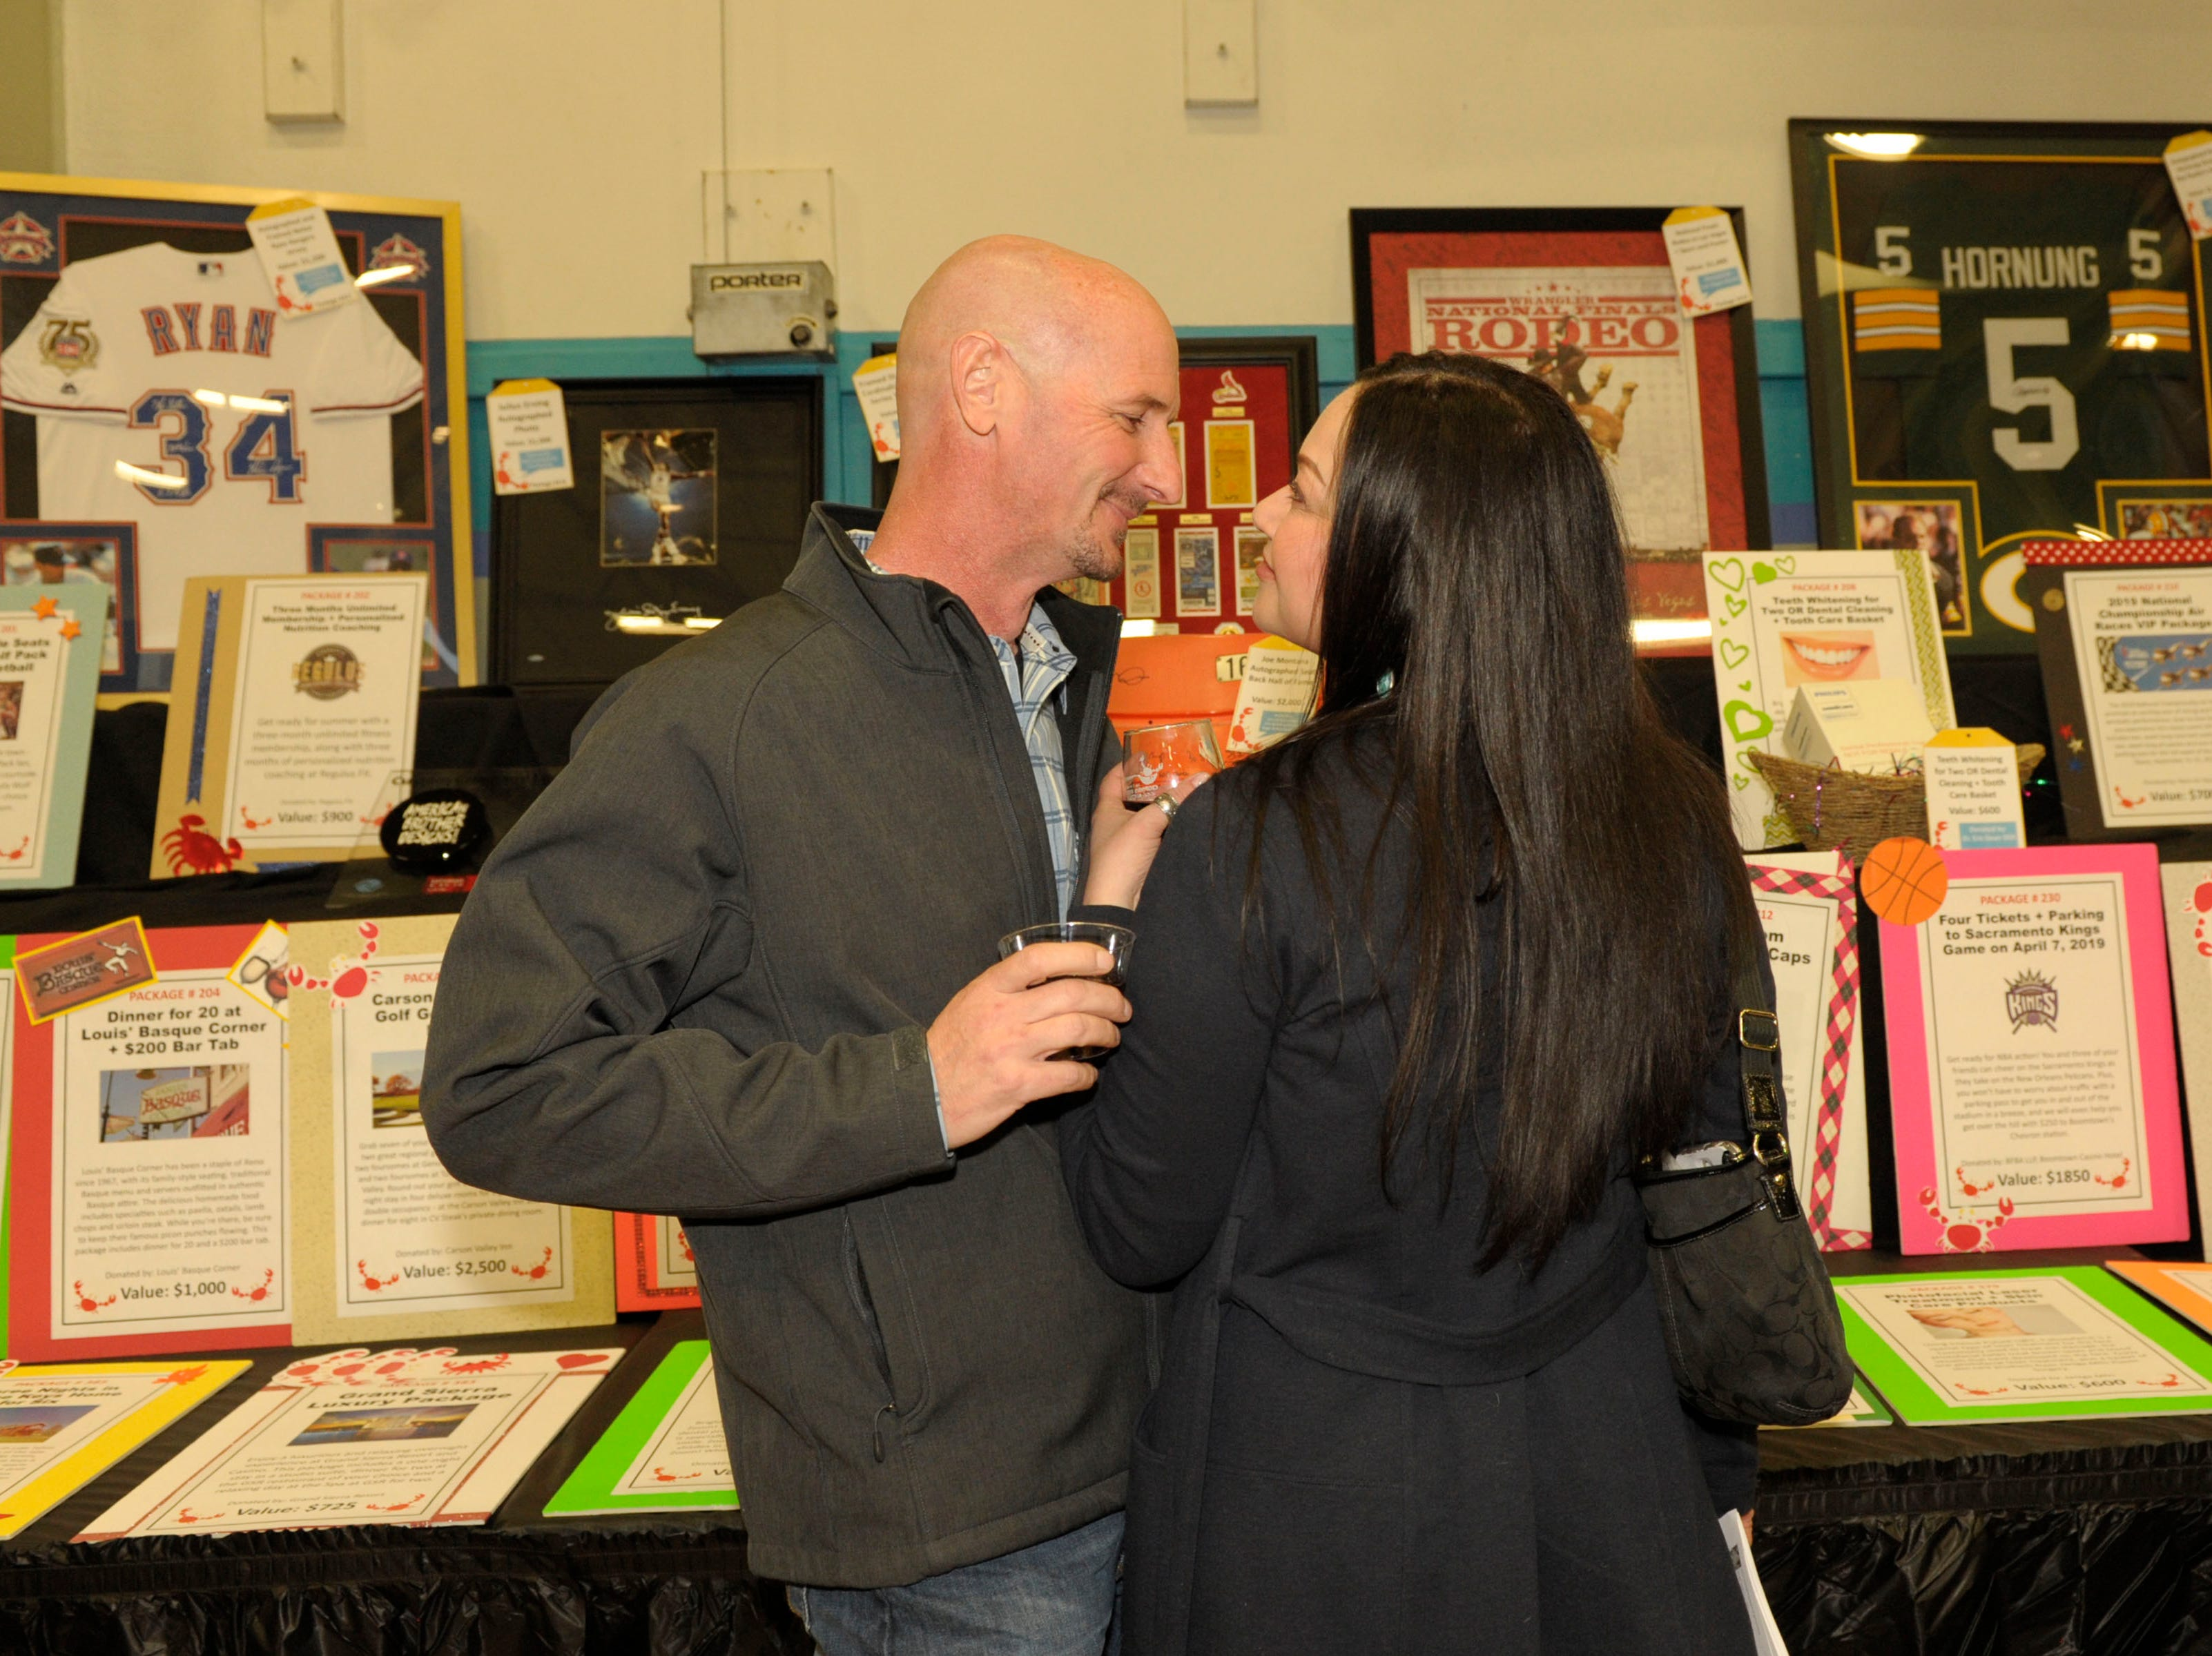 Mark Haire and Lorie Roberts attend the 39th Annual Jack T. Reviglio Cioppino Feed and Auction at the Boys & Girls Club of Truckee Meadows Sat., Feb. 23, 2019. Photos by Lisa J. Tolda/Special to the RGJ.